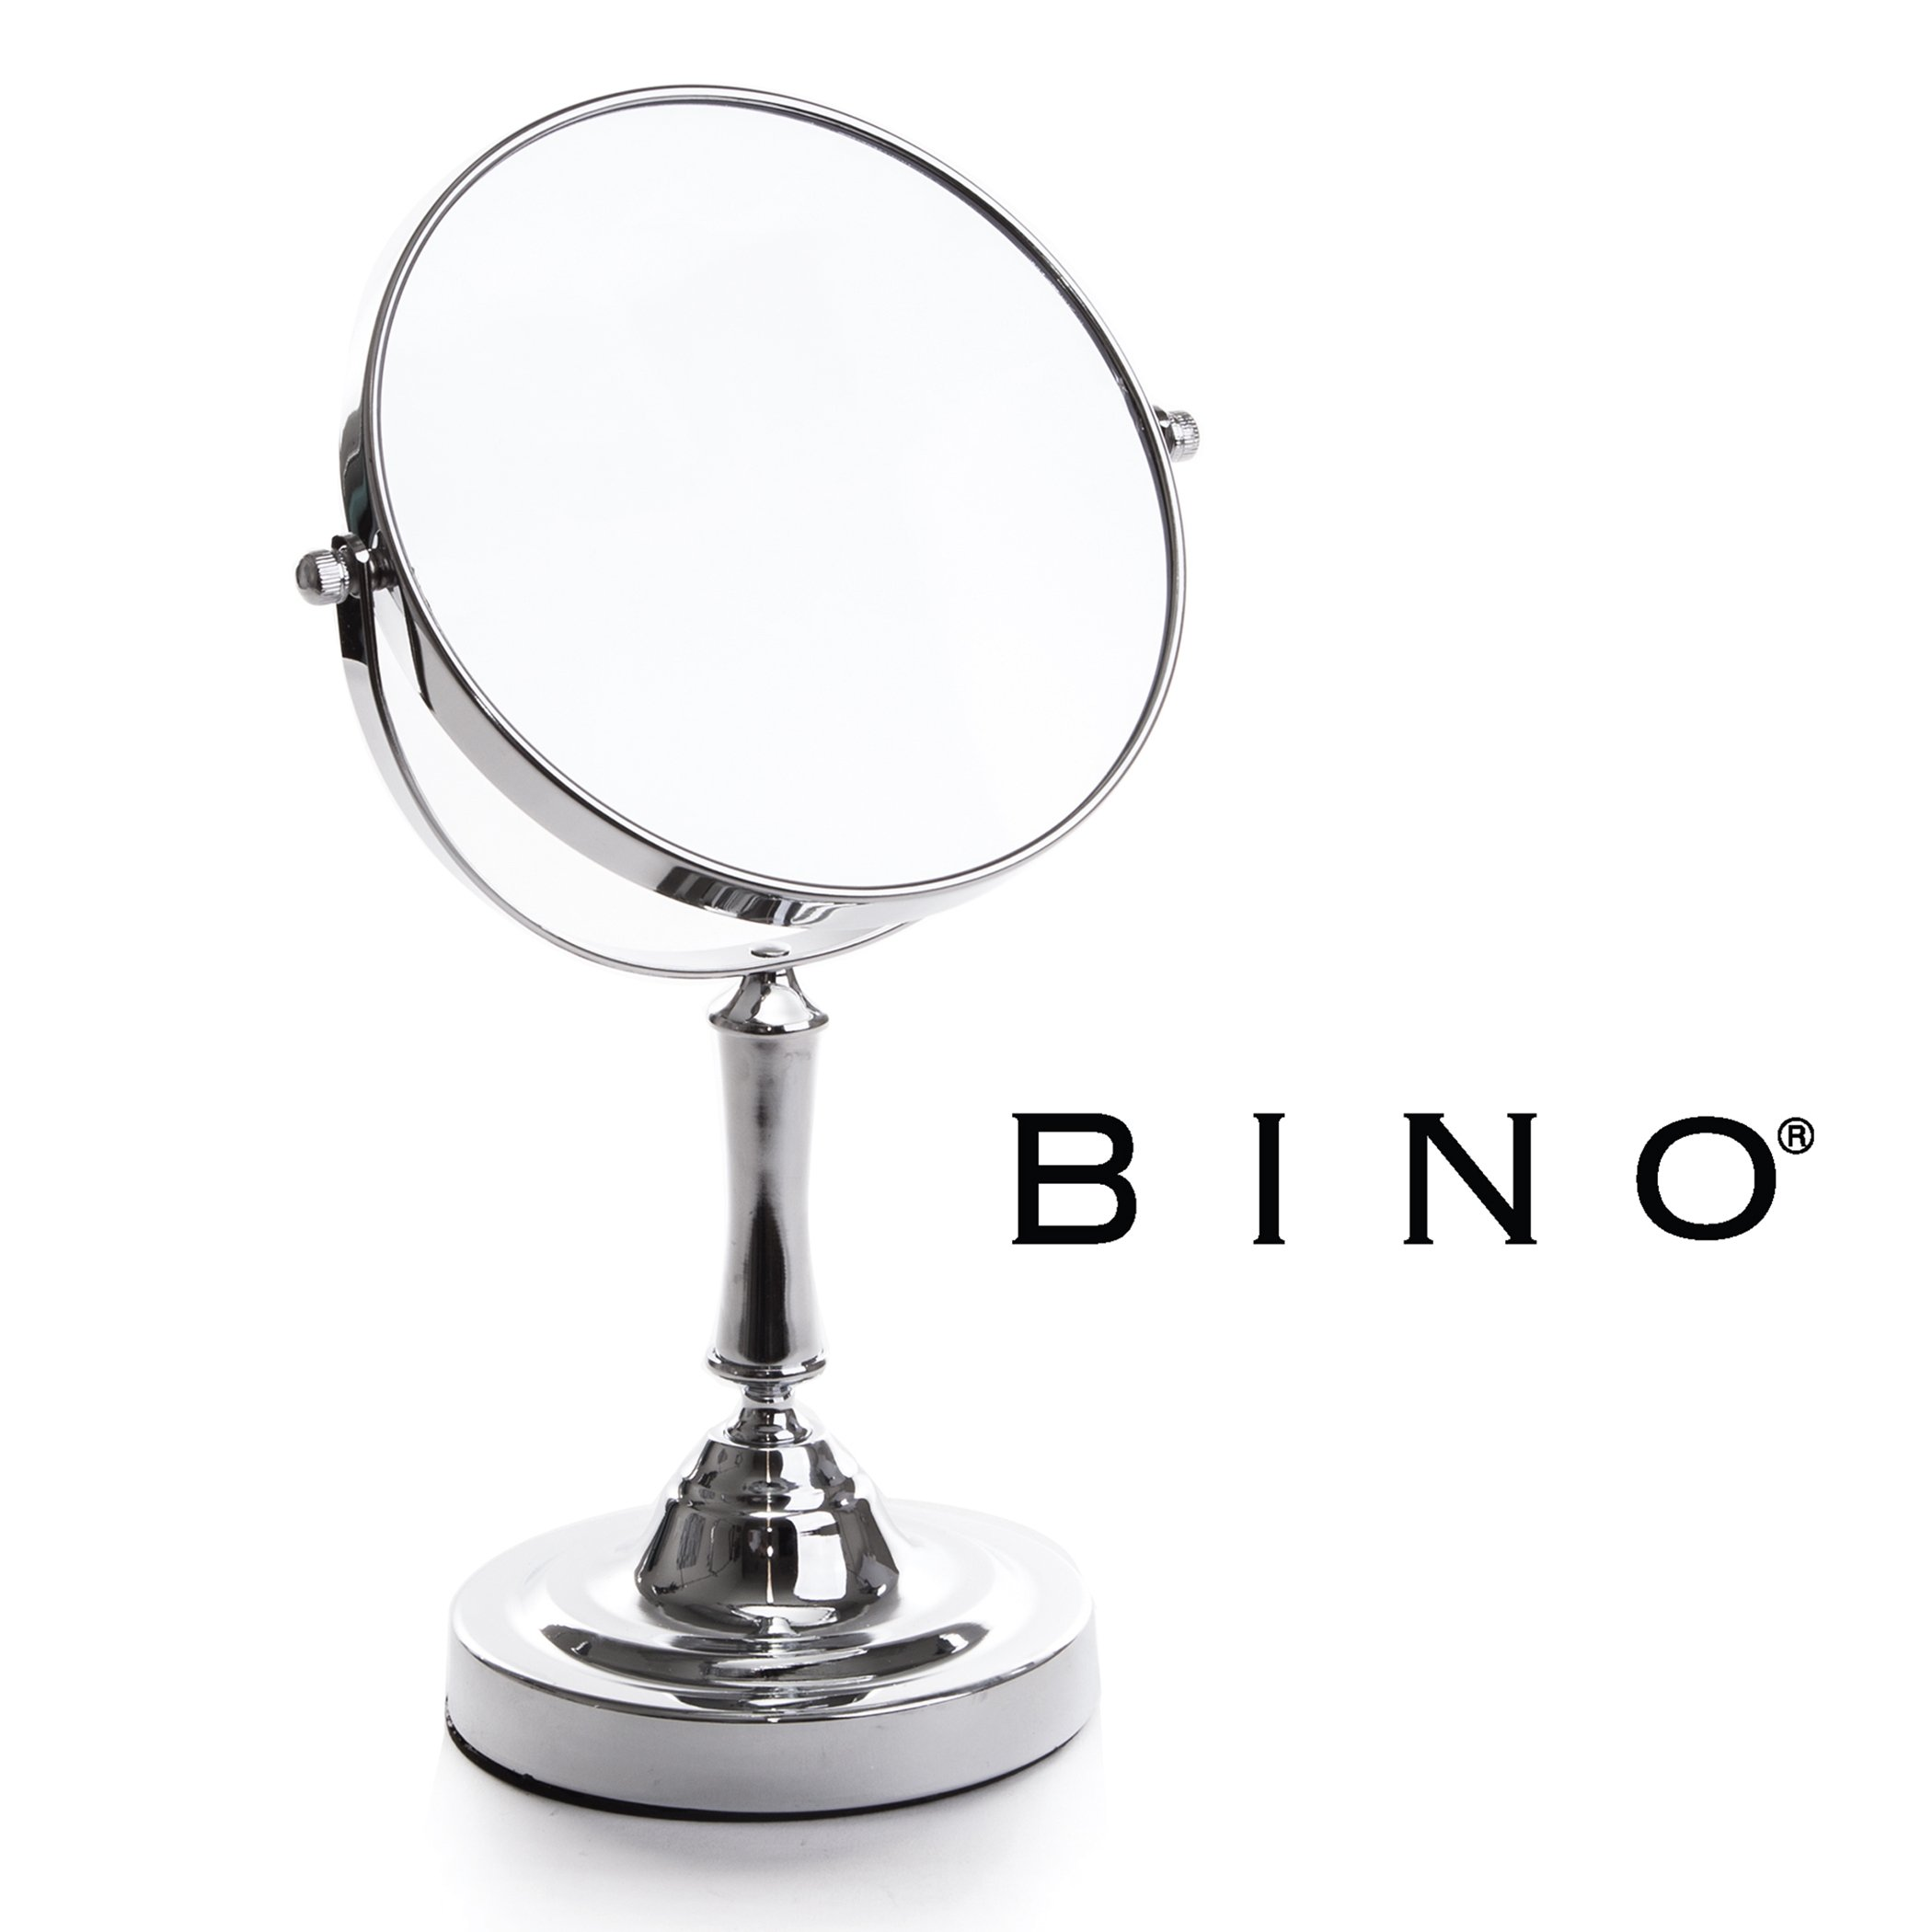 BINO 'The Academic' 6.5-Inch Double-Sided Swivel Tabletop Vanity Mirror with 5x Magnification, Chrome